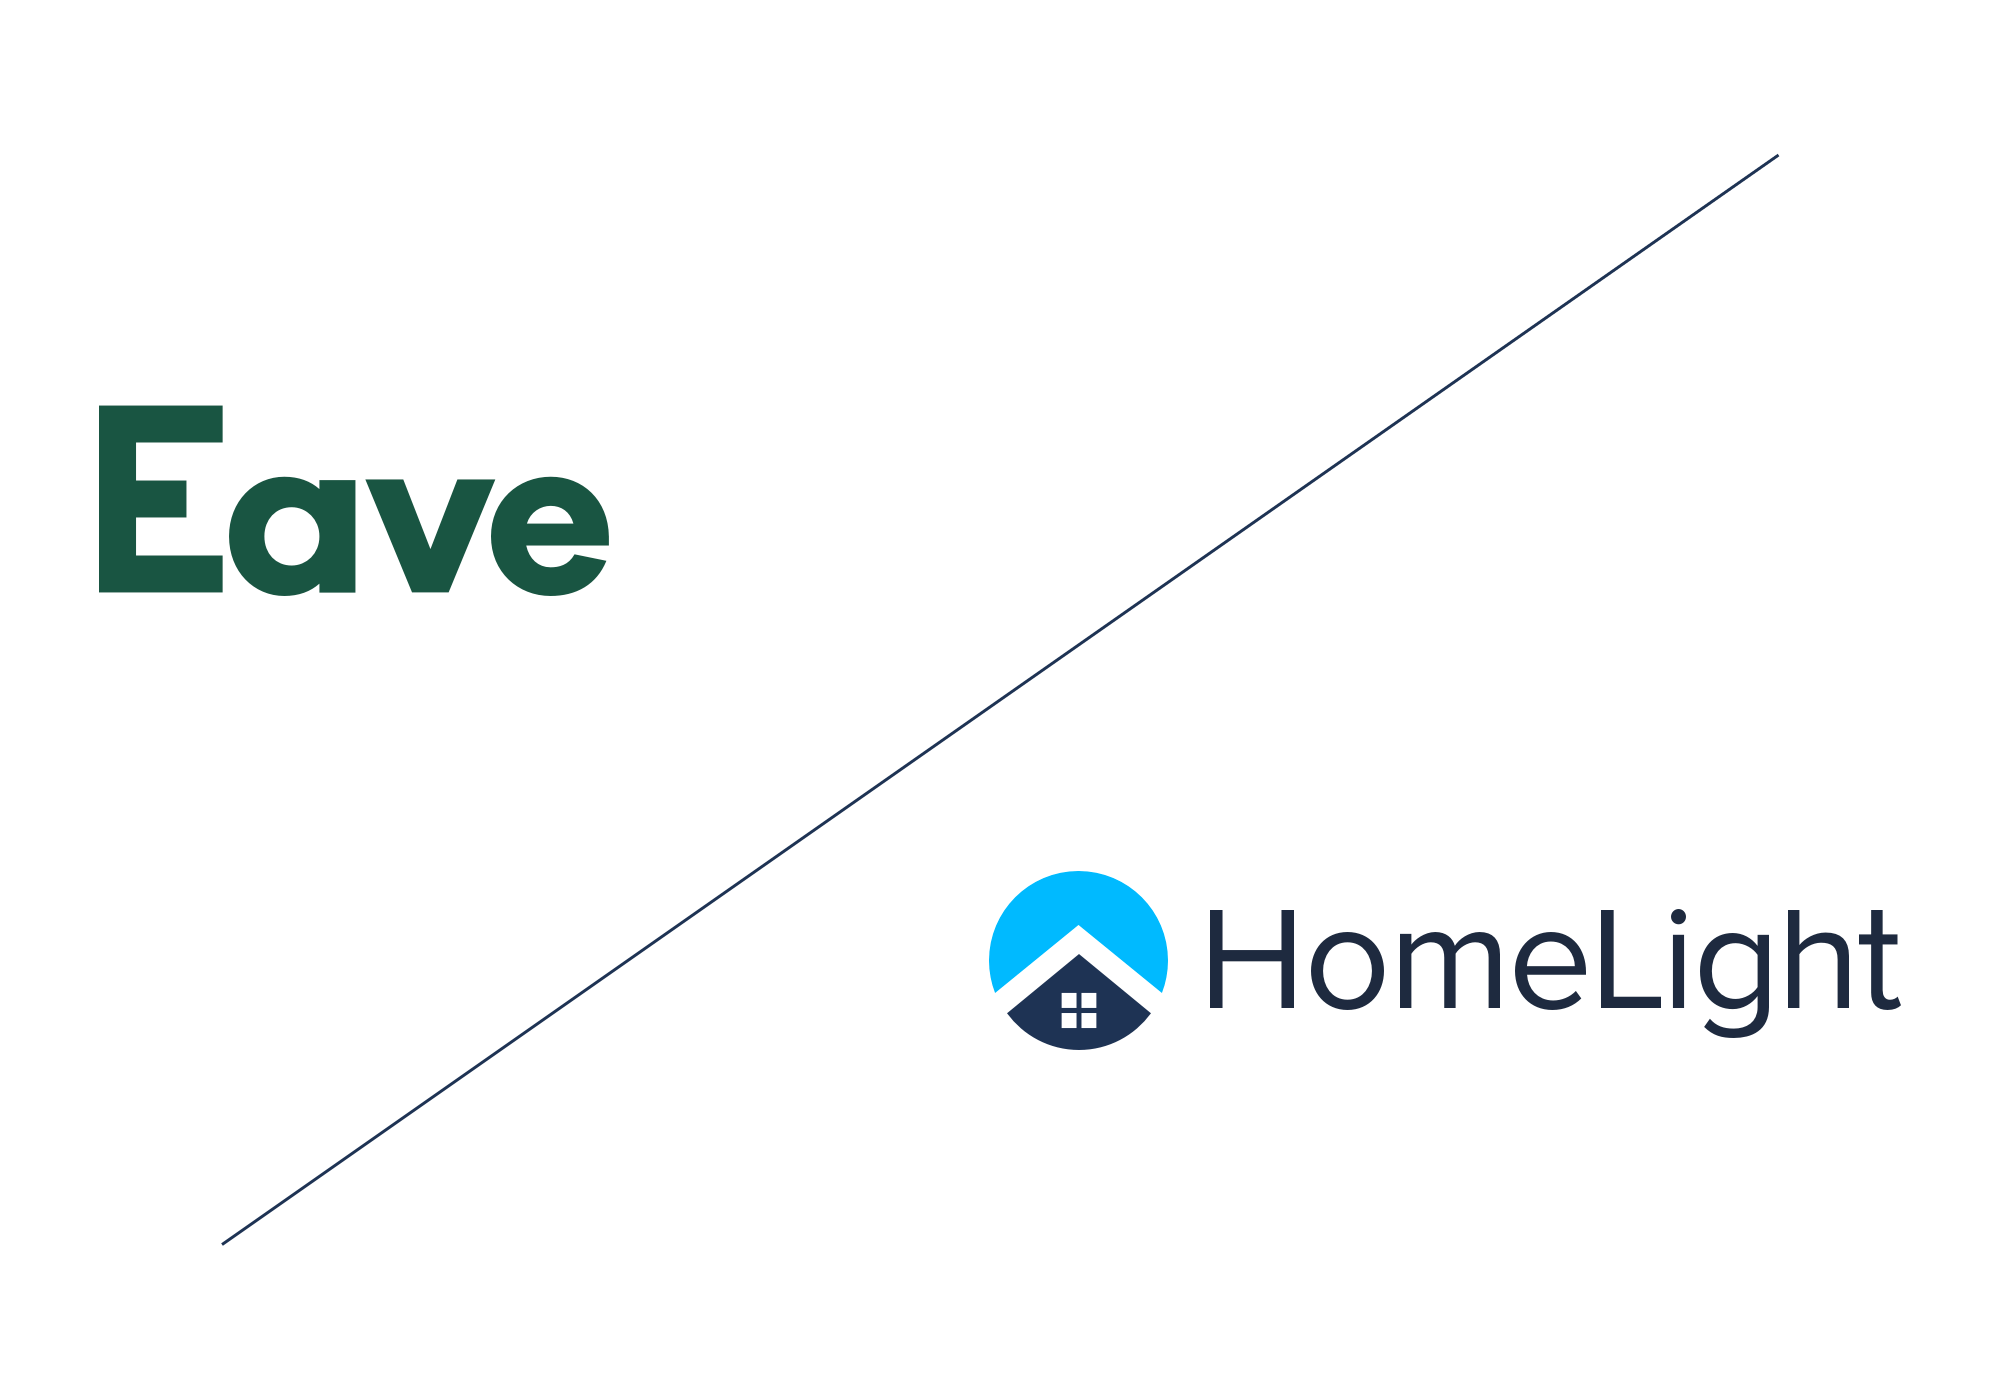 homelight-acquires-eave-featured-img